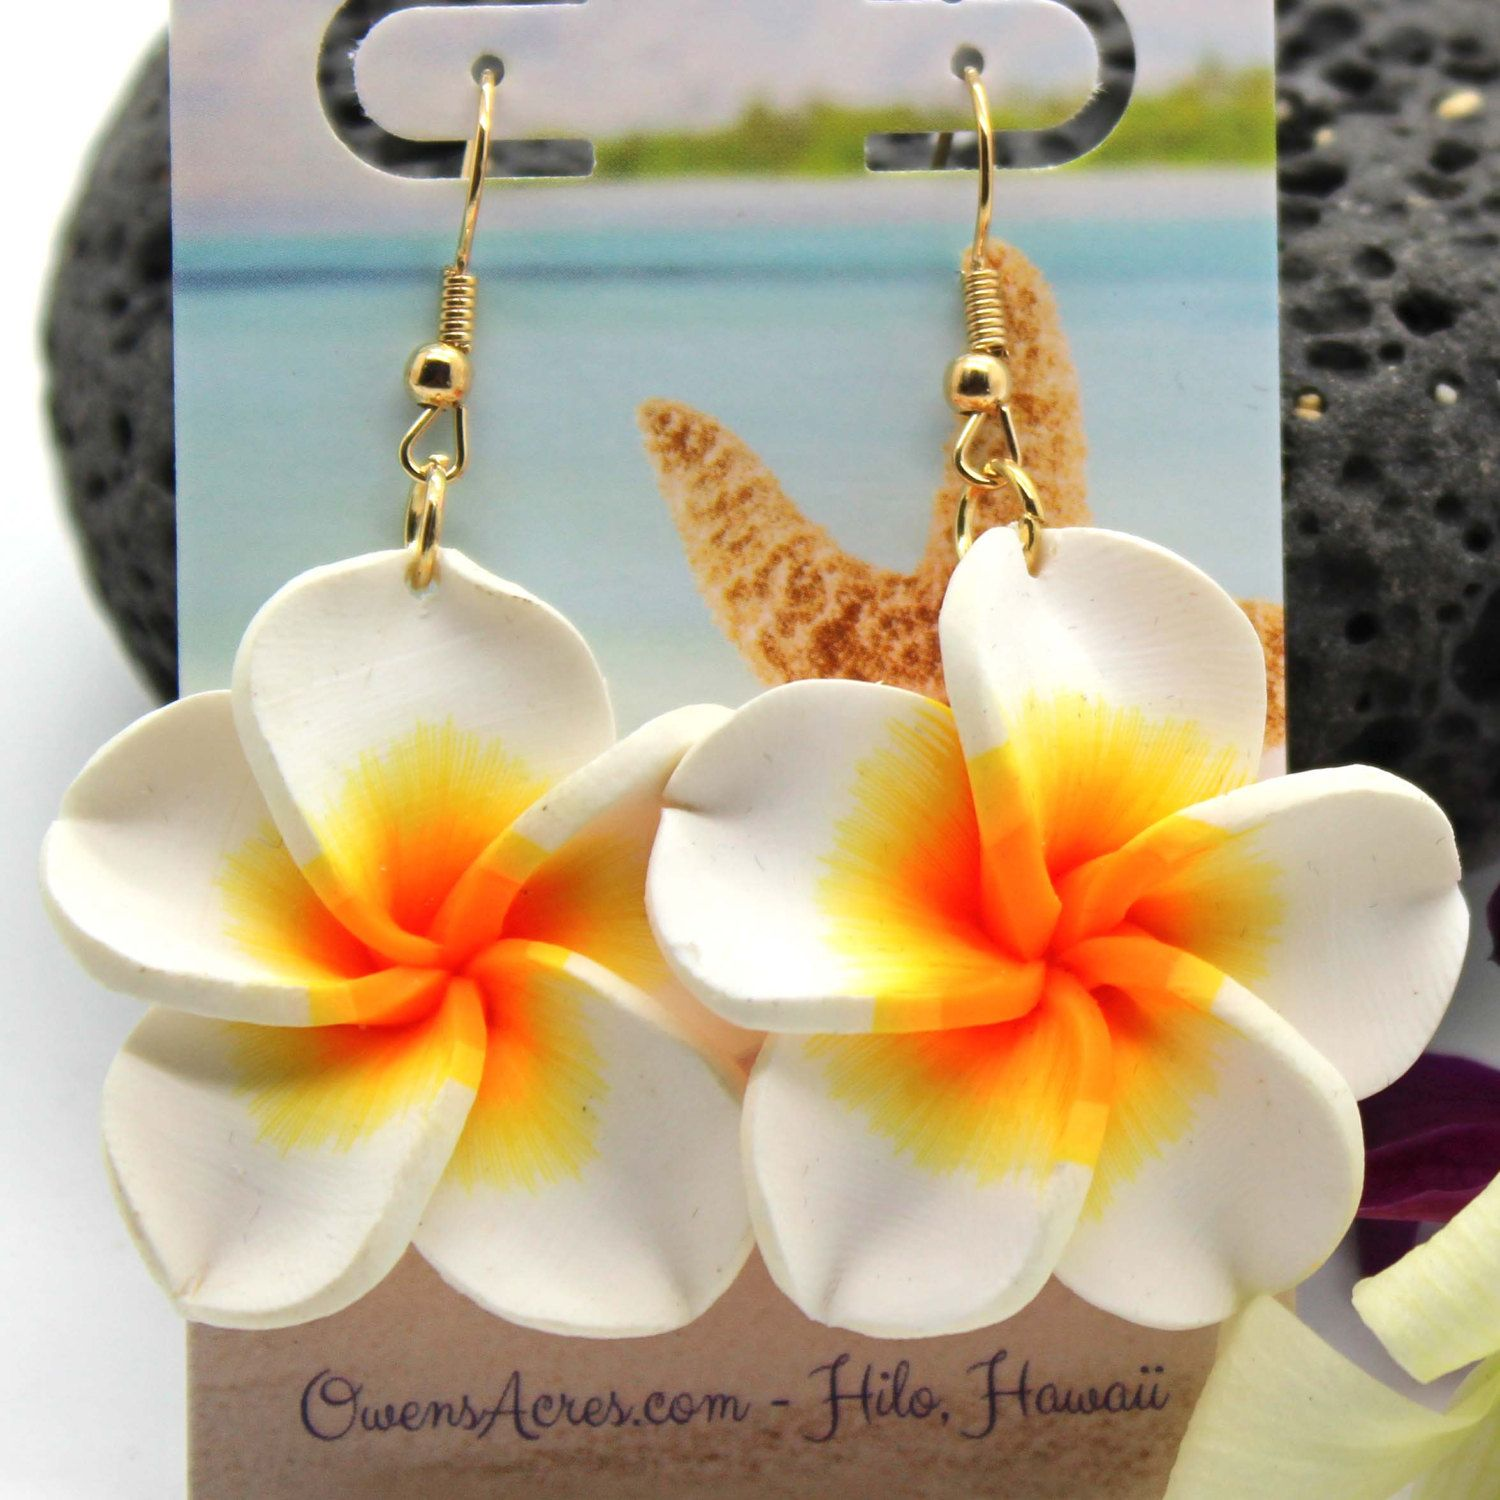 city in panama florida sharks shark s tooth earrings golf club beach wedding